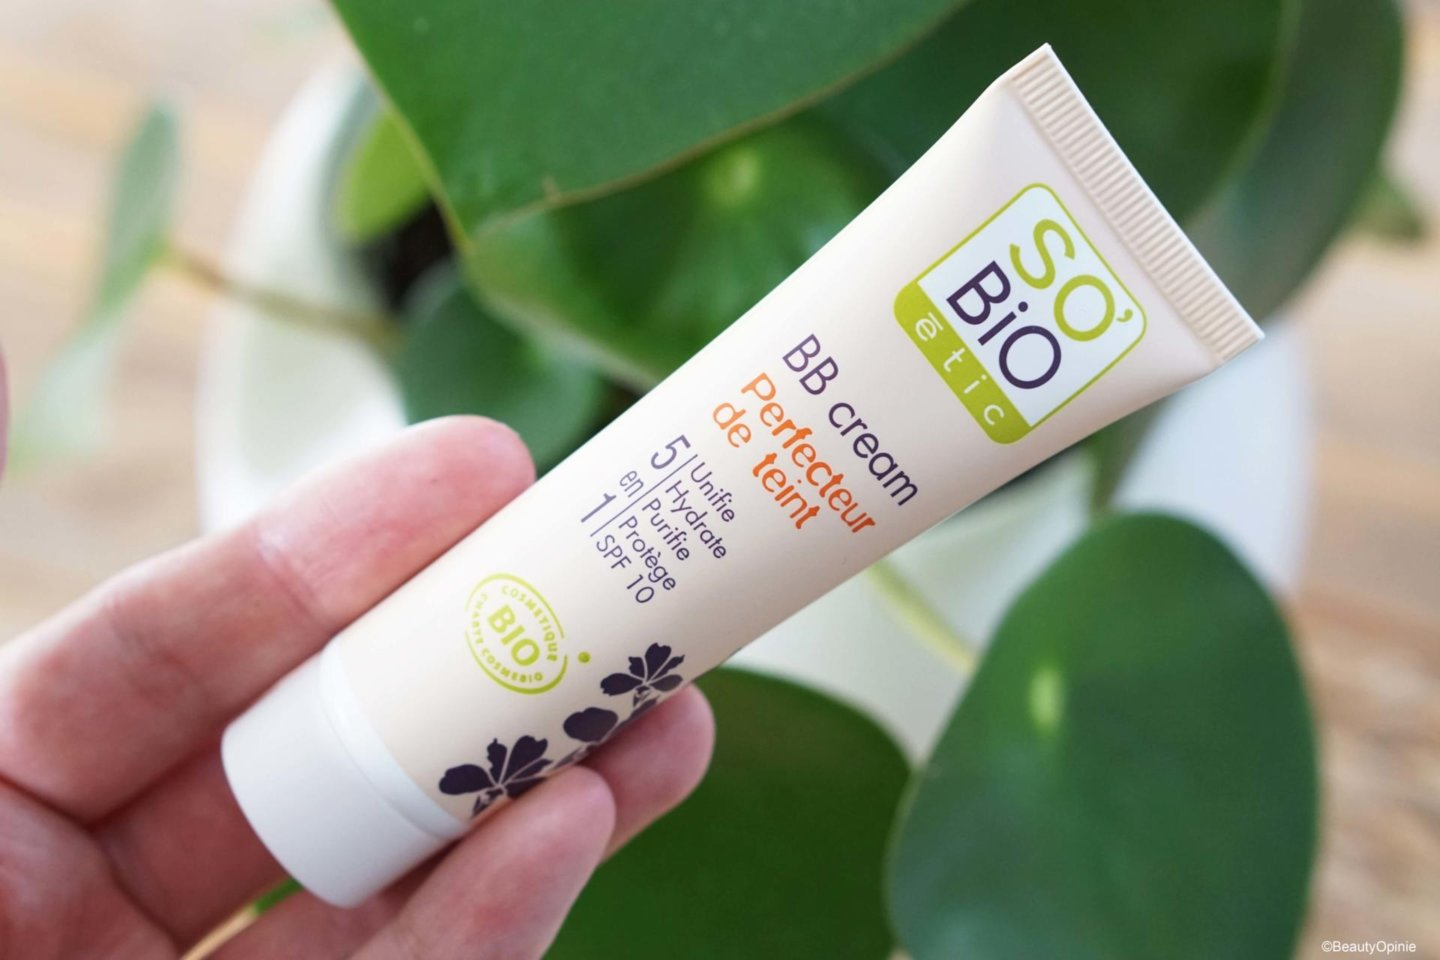 SO'BiO étic BB cream review